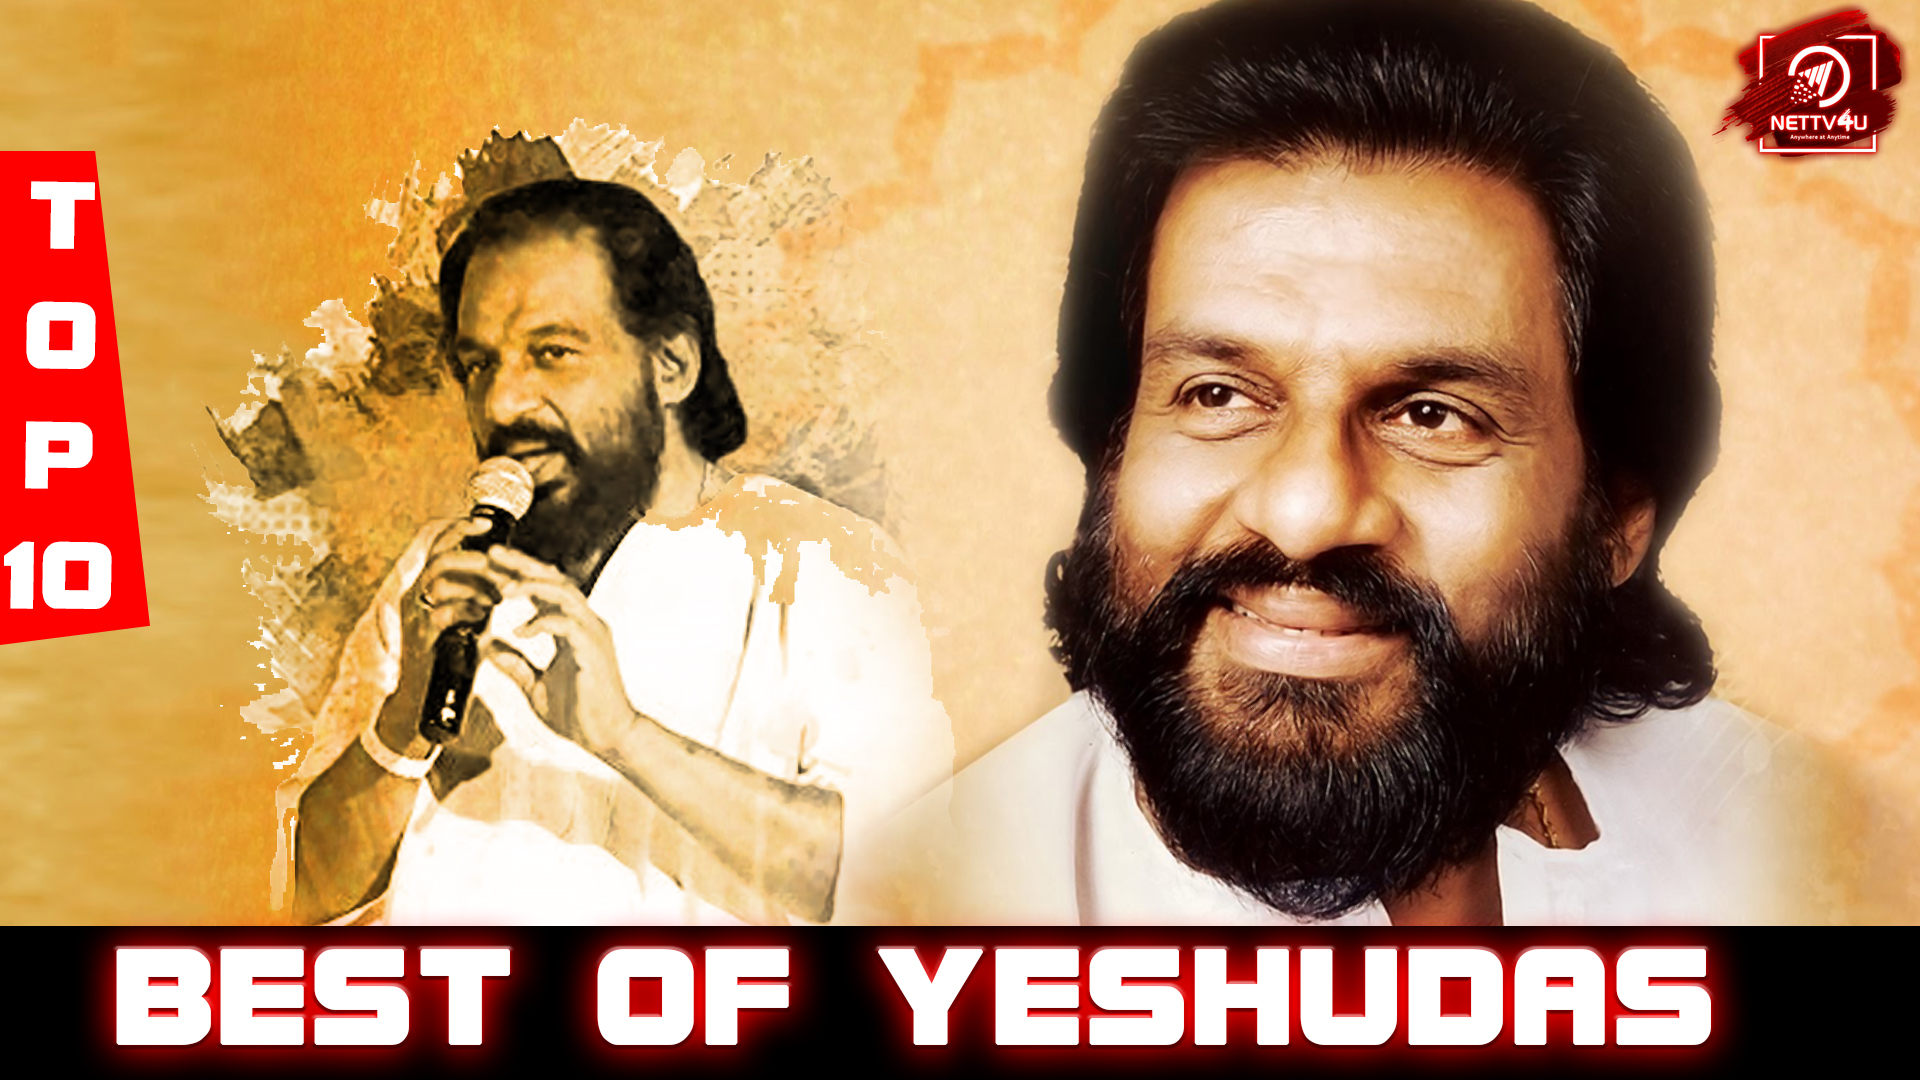 The Top 10 Heart Touching Songs Of Yesudas In Malayalam.